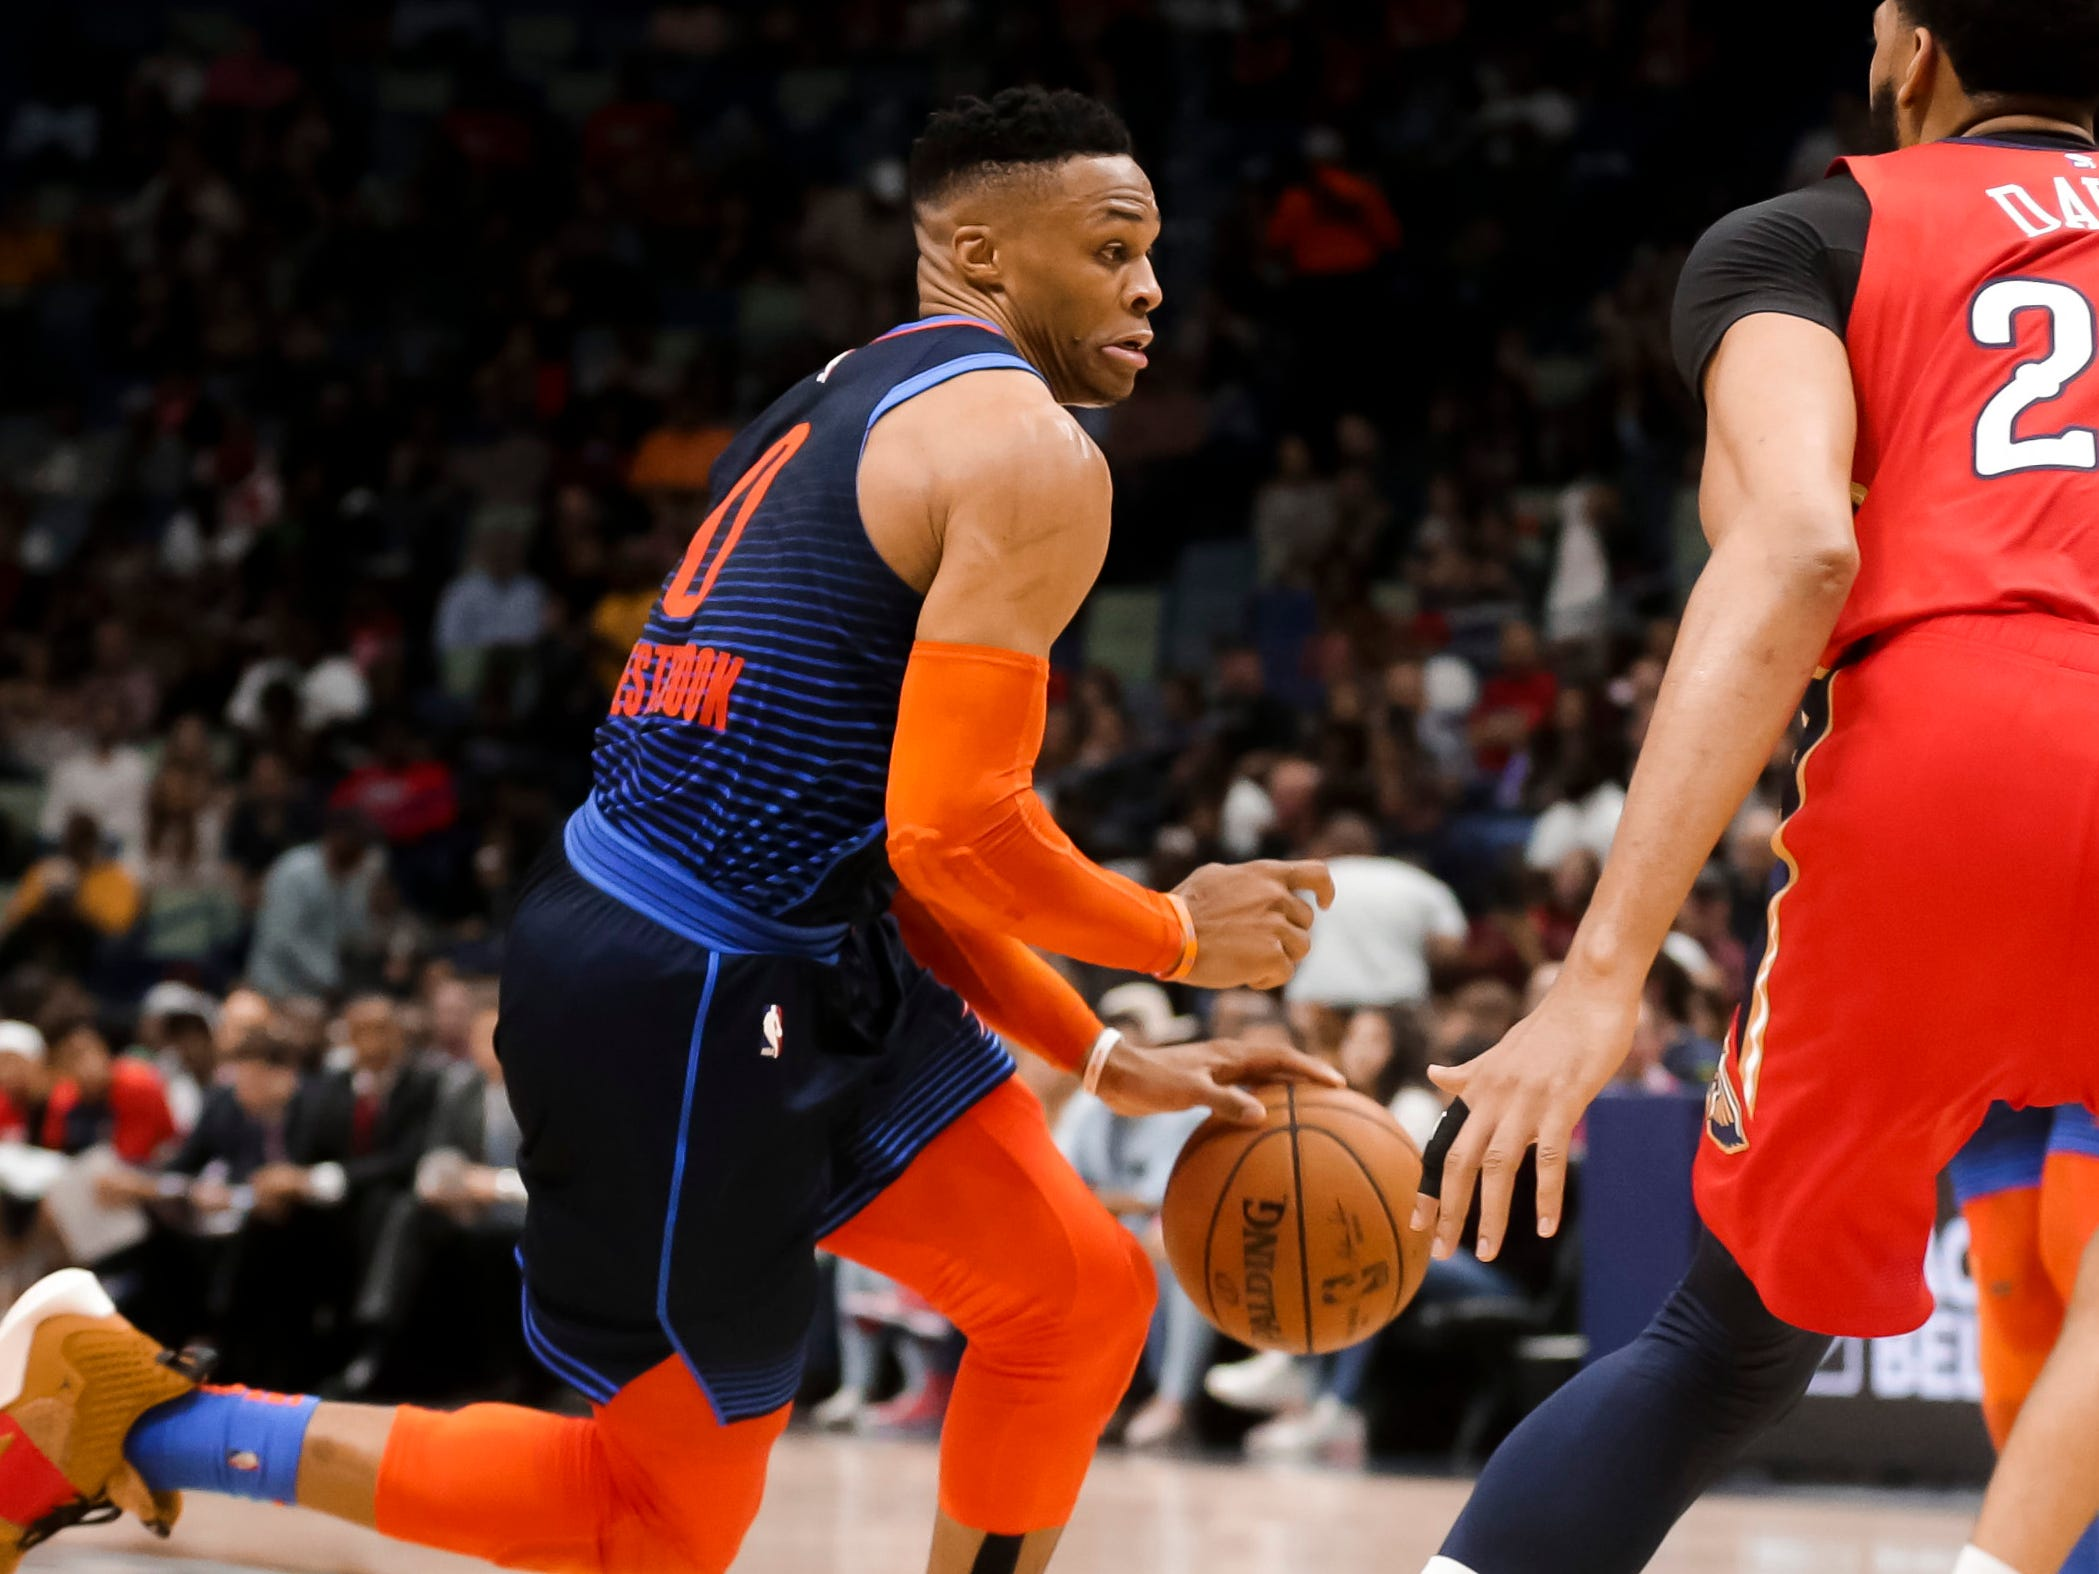 85. Russell Westbrook, Thunder (Feb. 14): 44 points, 14 rebounds, 11 assists in 131-122 loss to Pelicans (24th of season).